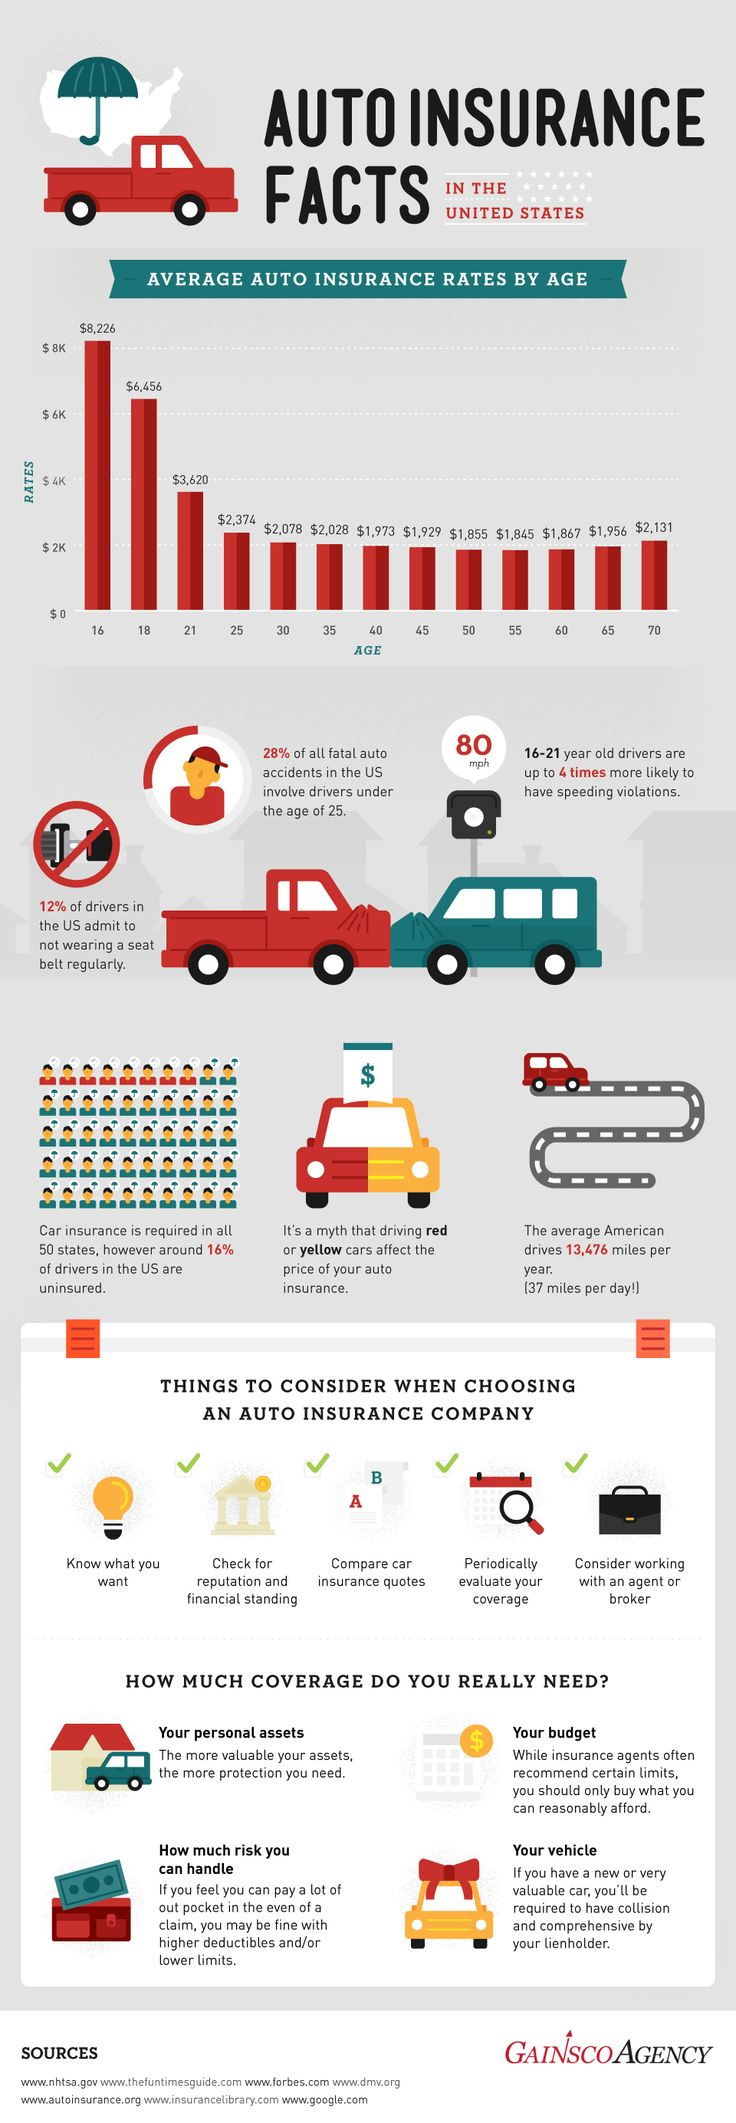 Auto Insurance Facts in the Untied States Infographic via the GAINSCO site